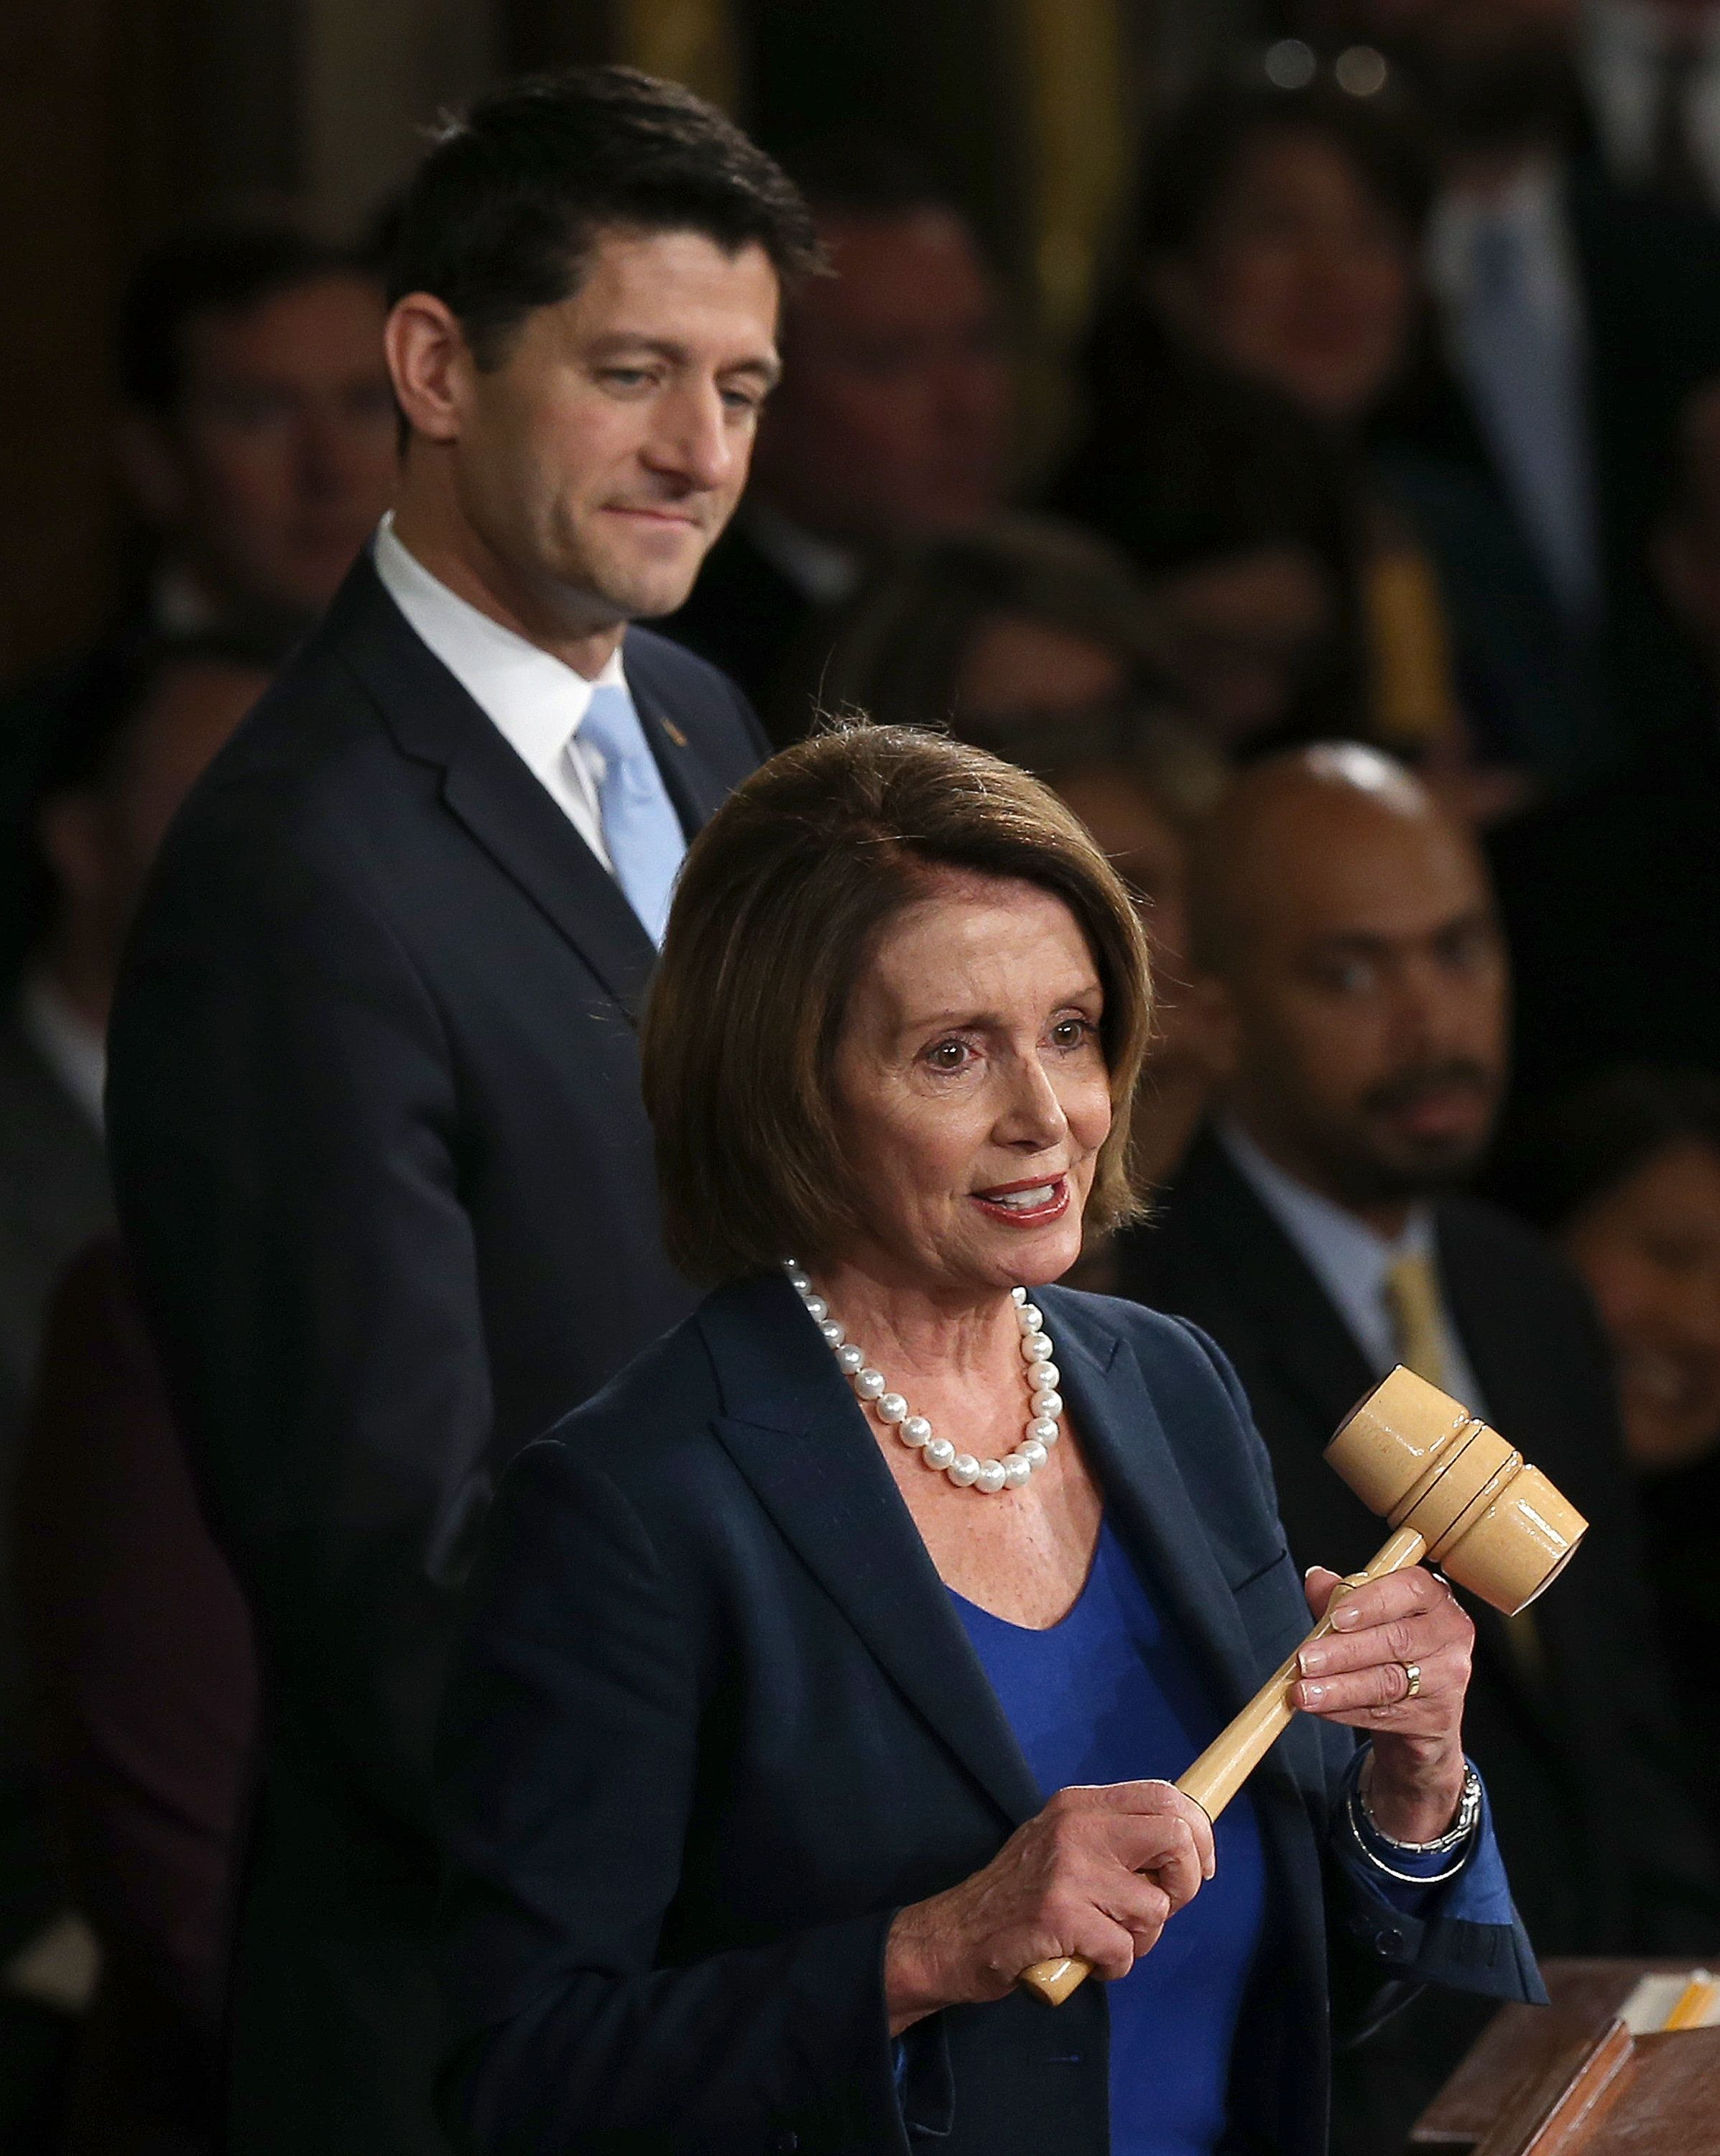 WASHINGTON, DC - OCTOBER 29:  House Minority Leader Nancy Pelosi (R) (D-CA) prepares to give the Speaker's gavel to Speaker of the House Paul Ryan (L) (R-WI)  after Ryan was elected to the leadership position October 29, 2015 in Washington, DC. The House elected Ryan (R-WI) as the 62nd Speaker of the House, replacing Rep. John Boehner (R-OH).  (Photo by Win McNamee/Getty Images)